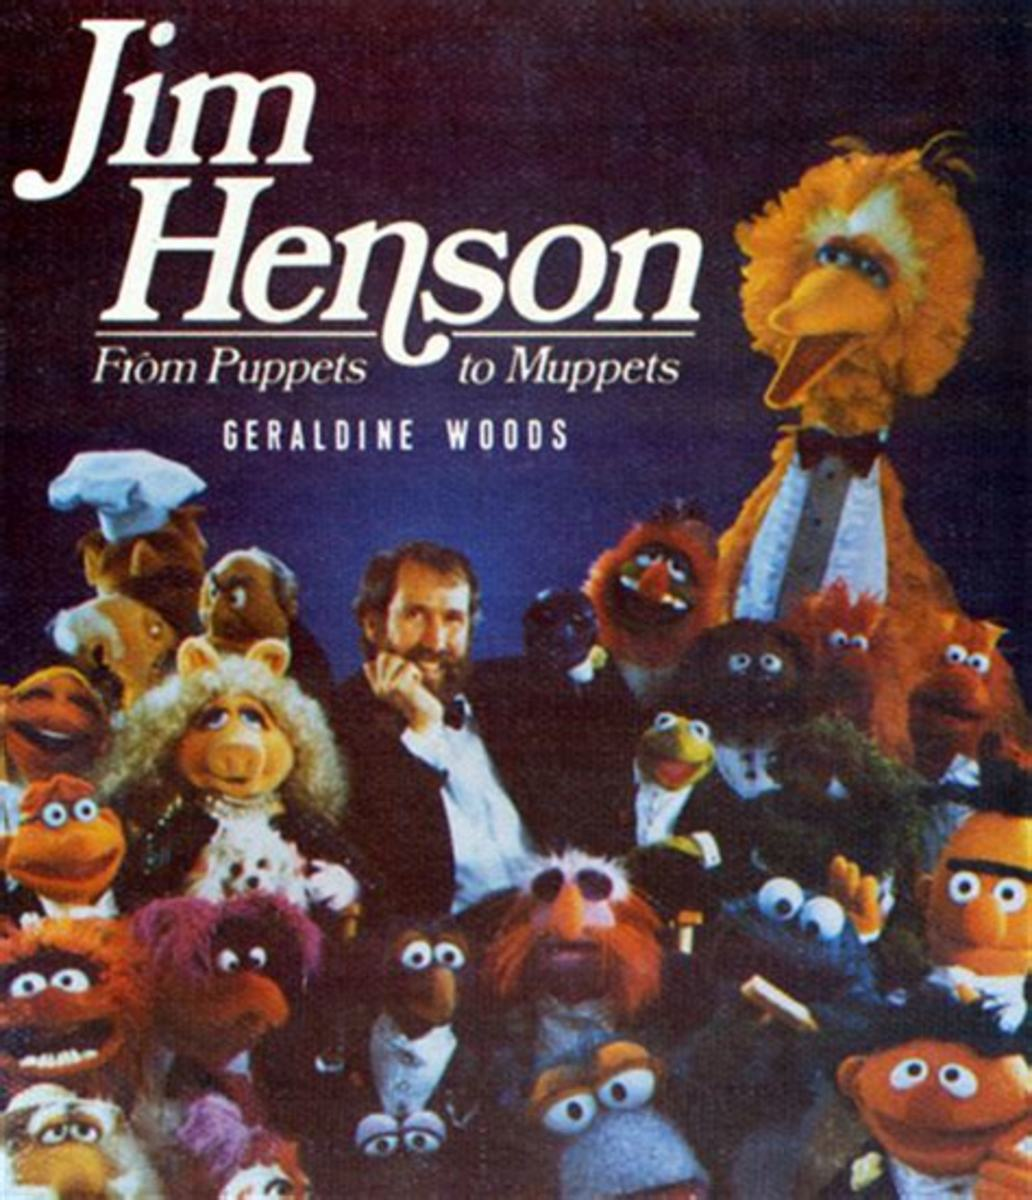 Story about Jim Henson on Sesame Street